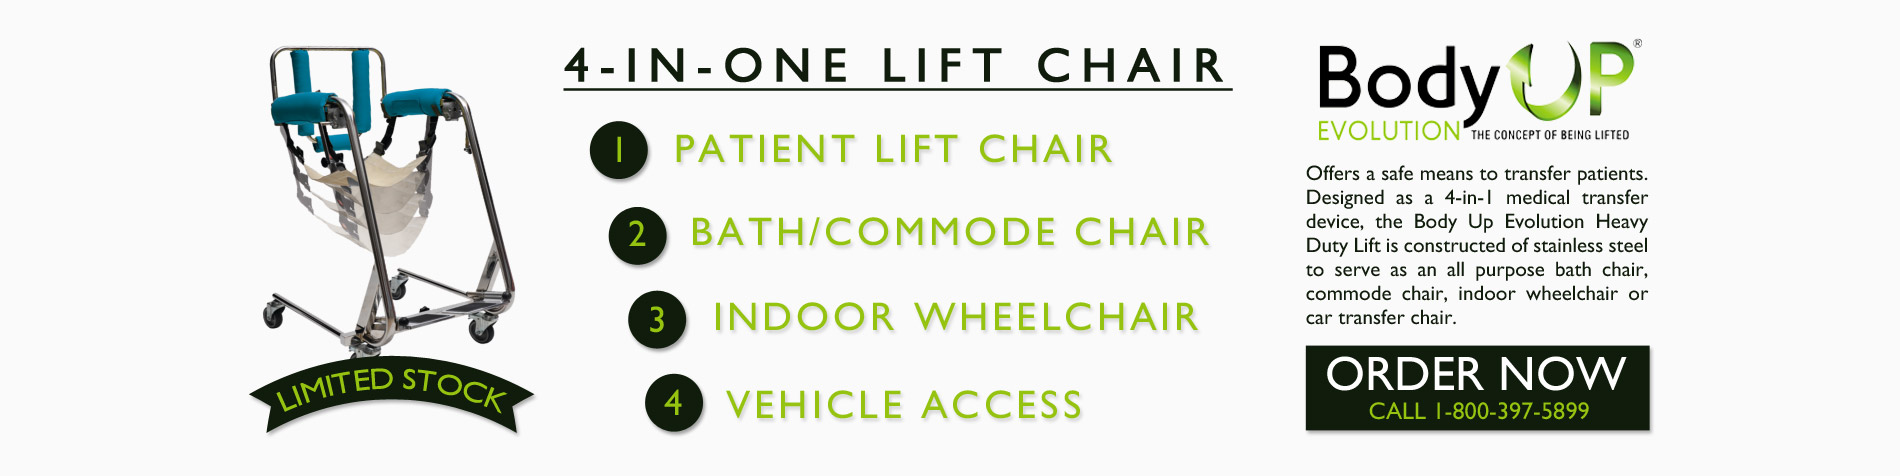 Body Up Evolution Lift Chair